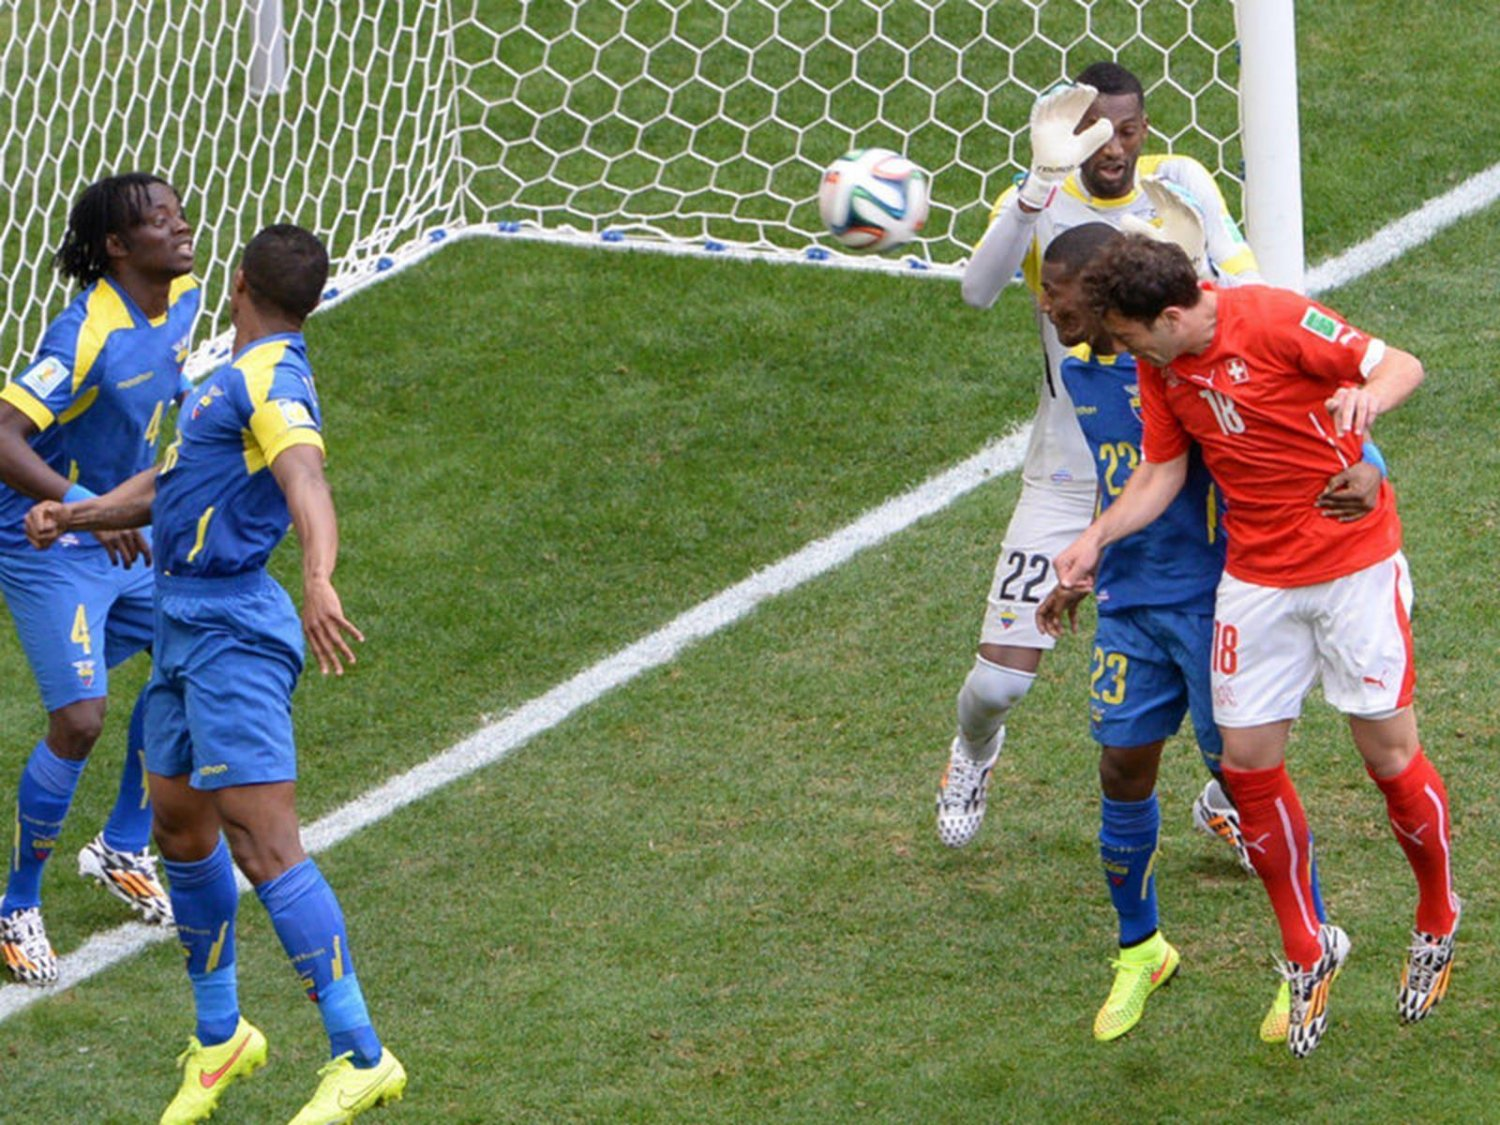 315 - 8 X 6 Photo - Football - FIFA World Cup 2014 - Switzerland V Ecuador - Admir  Mehmedi Scores